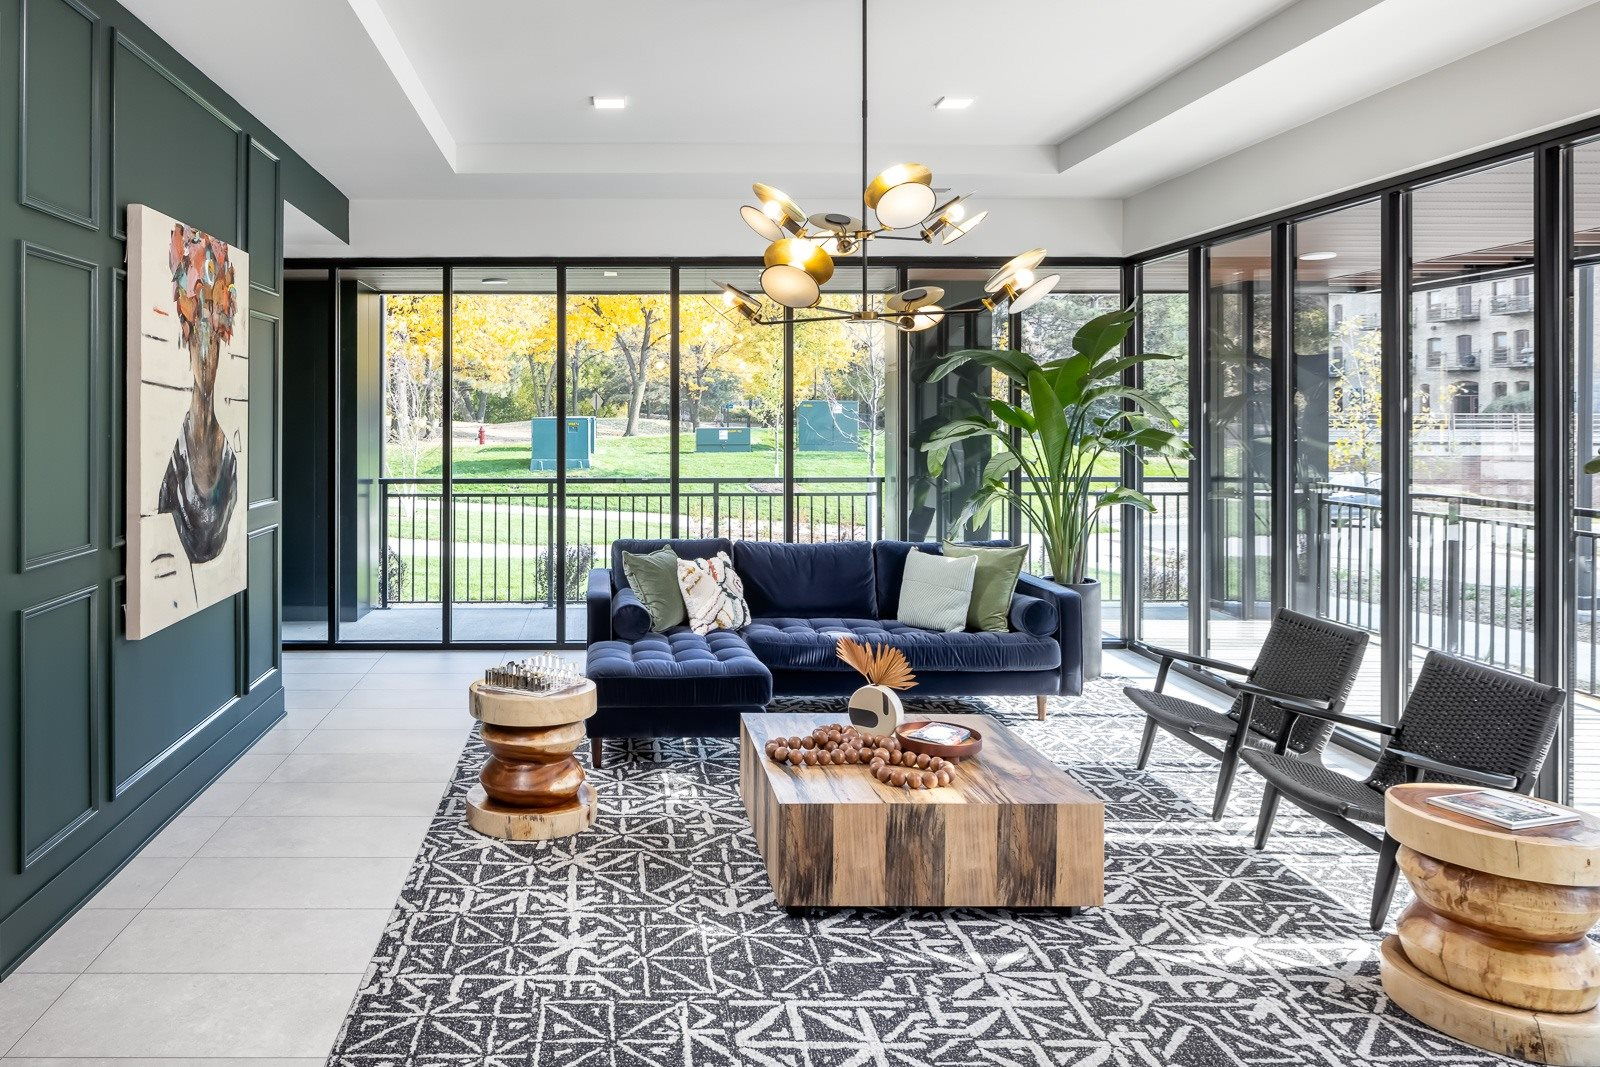 Lobby seating with floor to ceiling windows overlooking green landscaping in Minneapolis